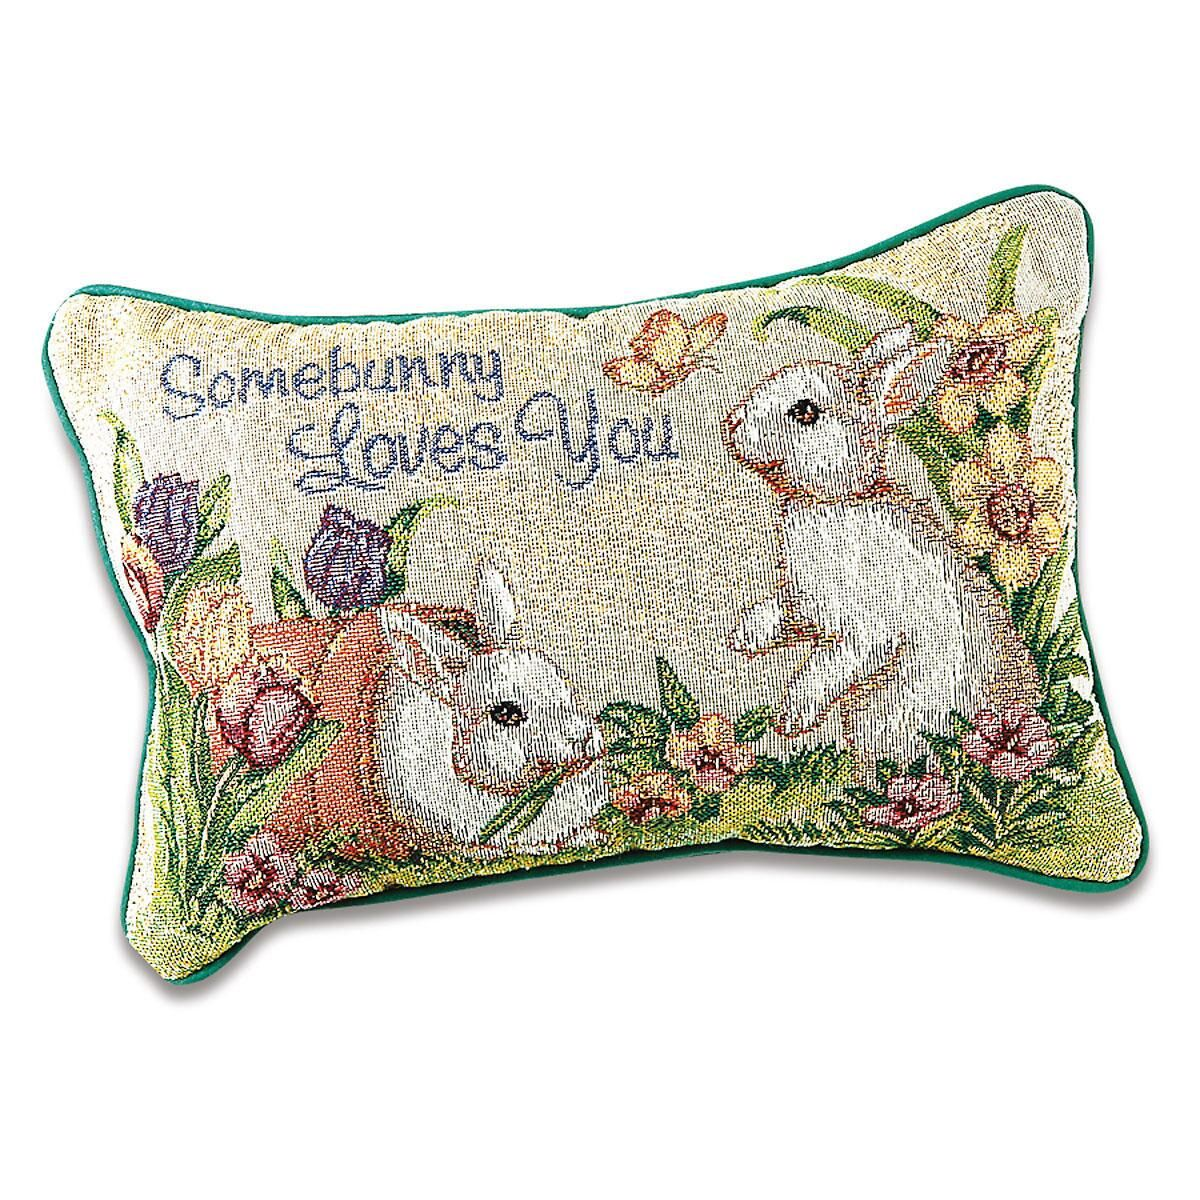 Somebunny Loves You Decorative Pillow